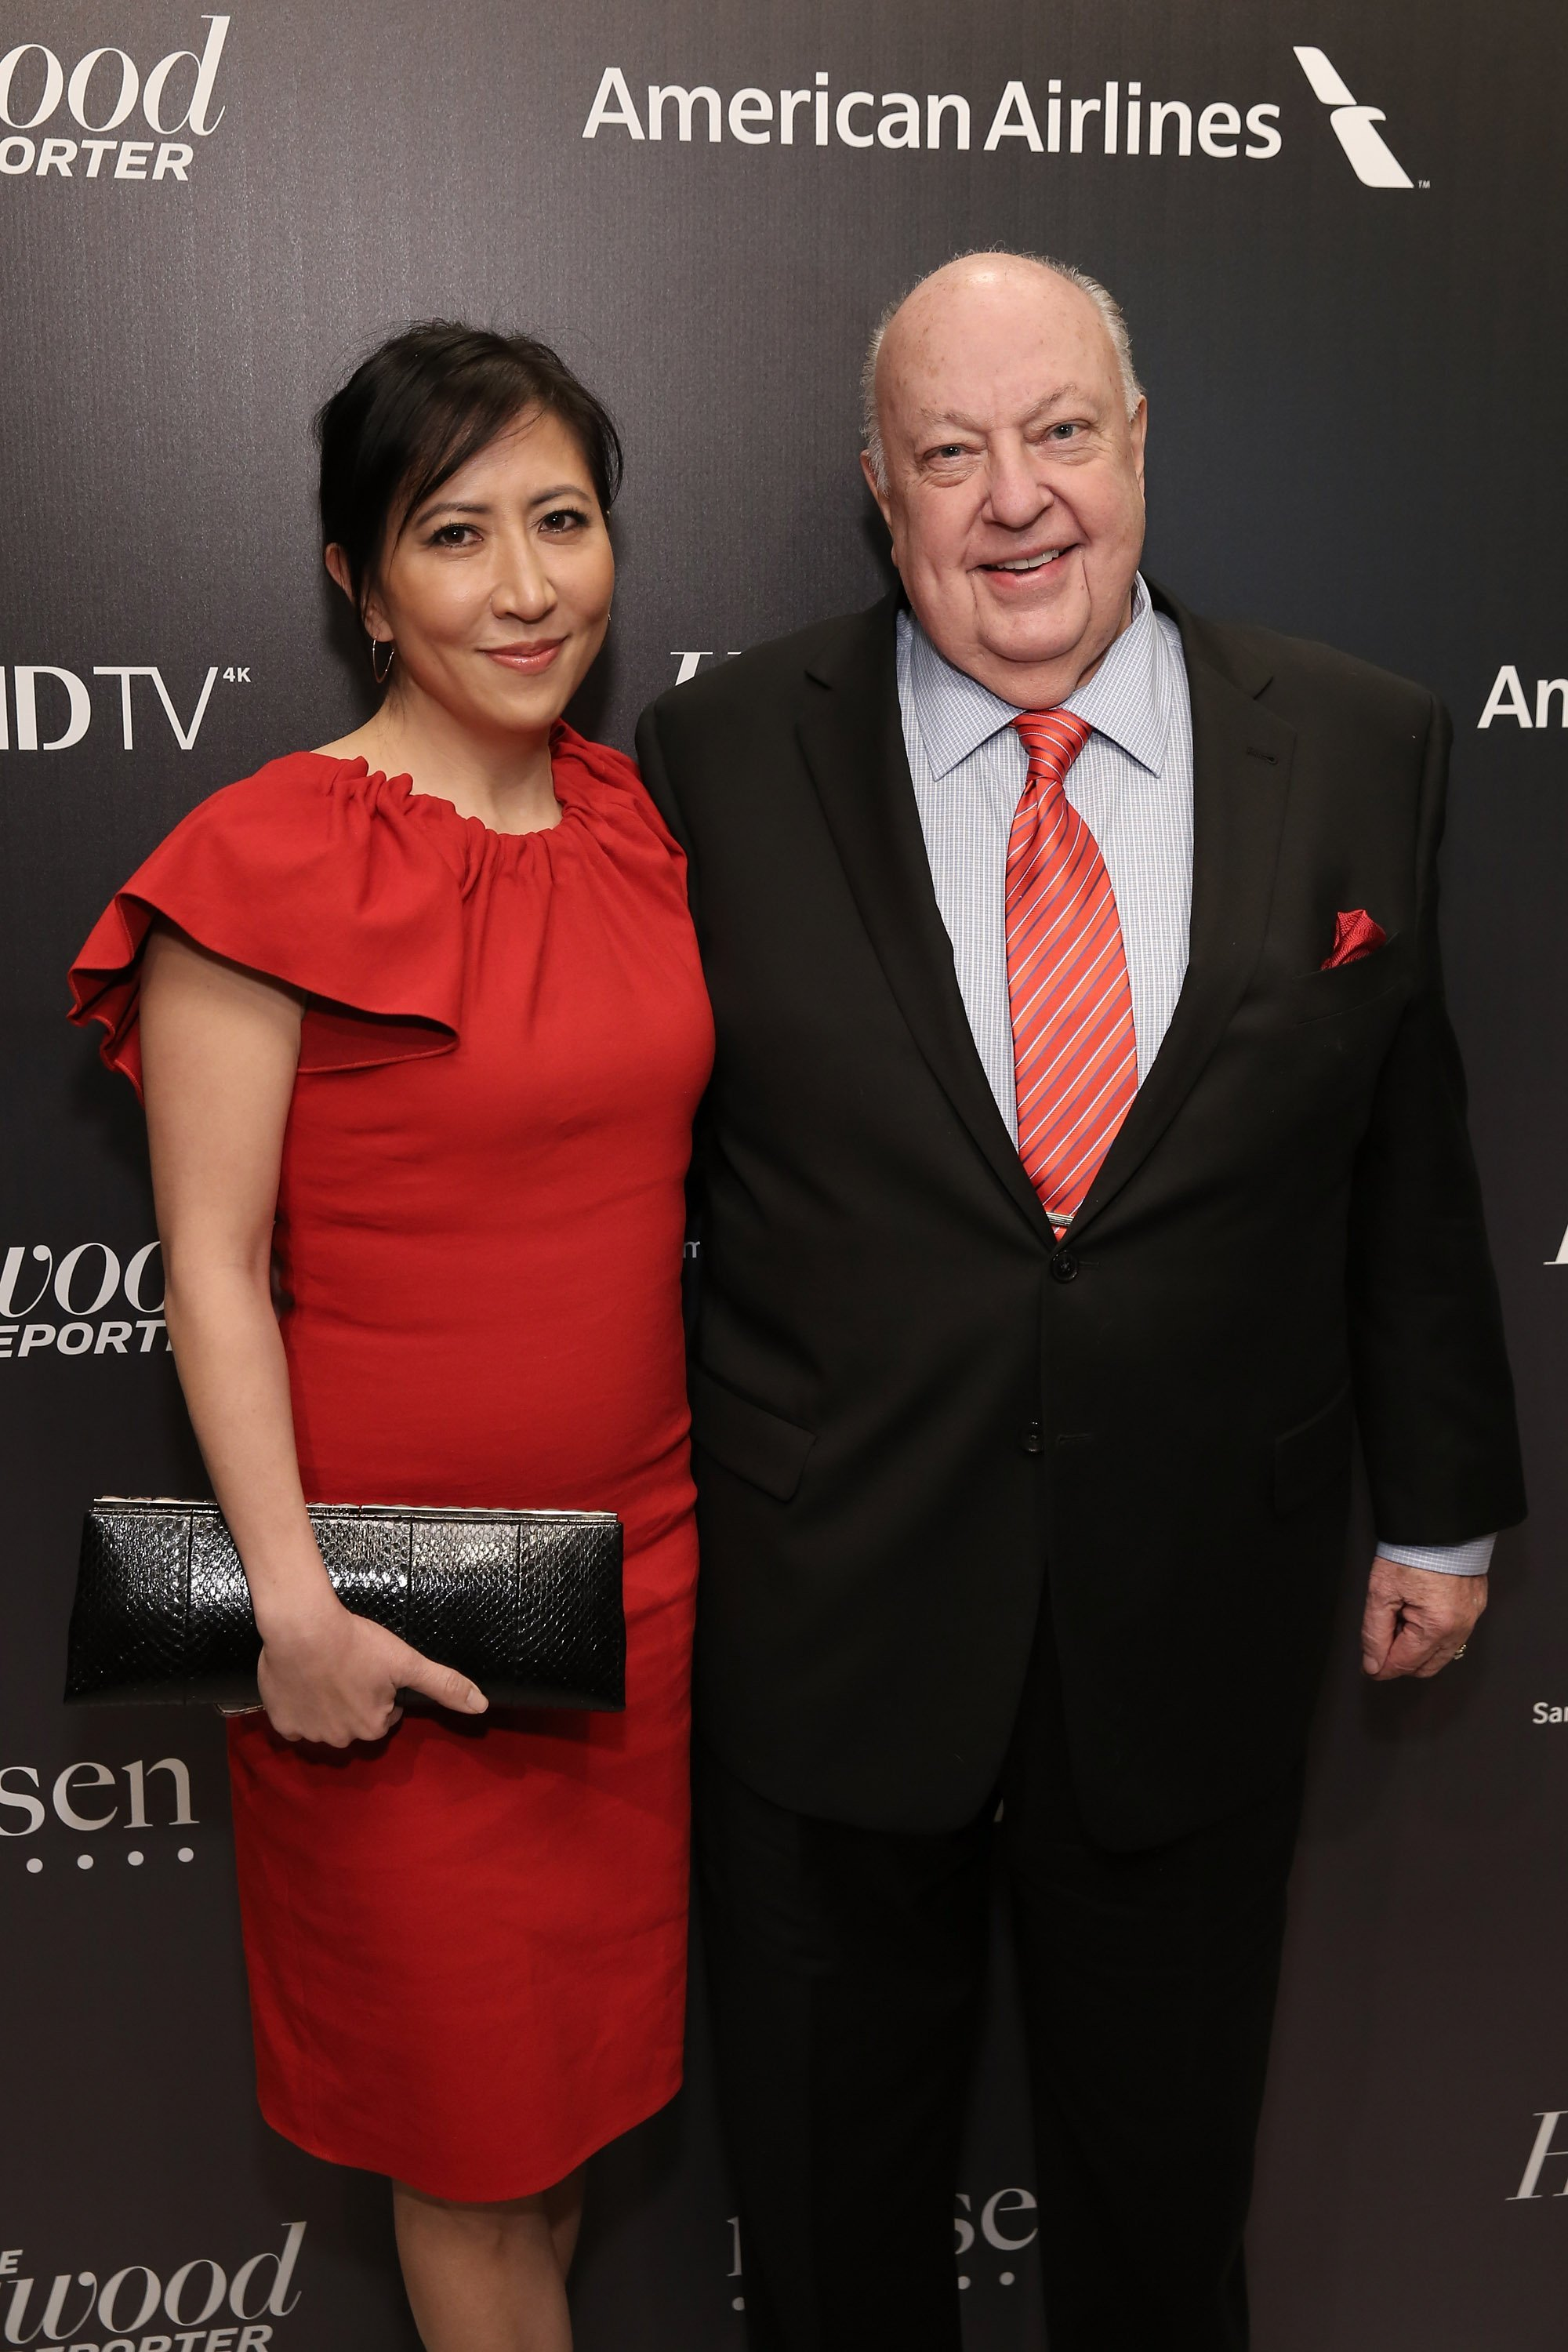 'The Loudest Voice' makes noise with damning portrait of Roger Ailes